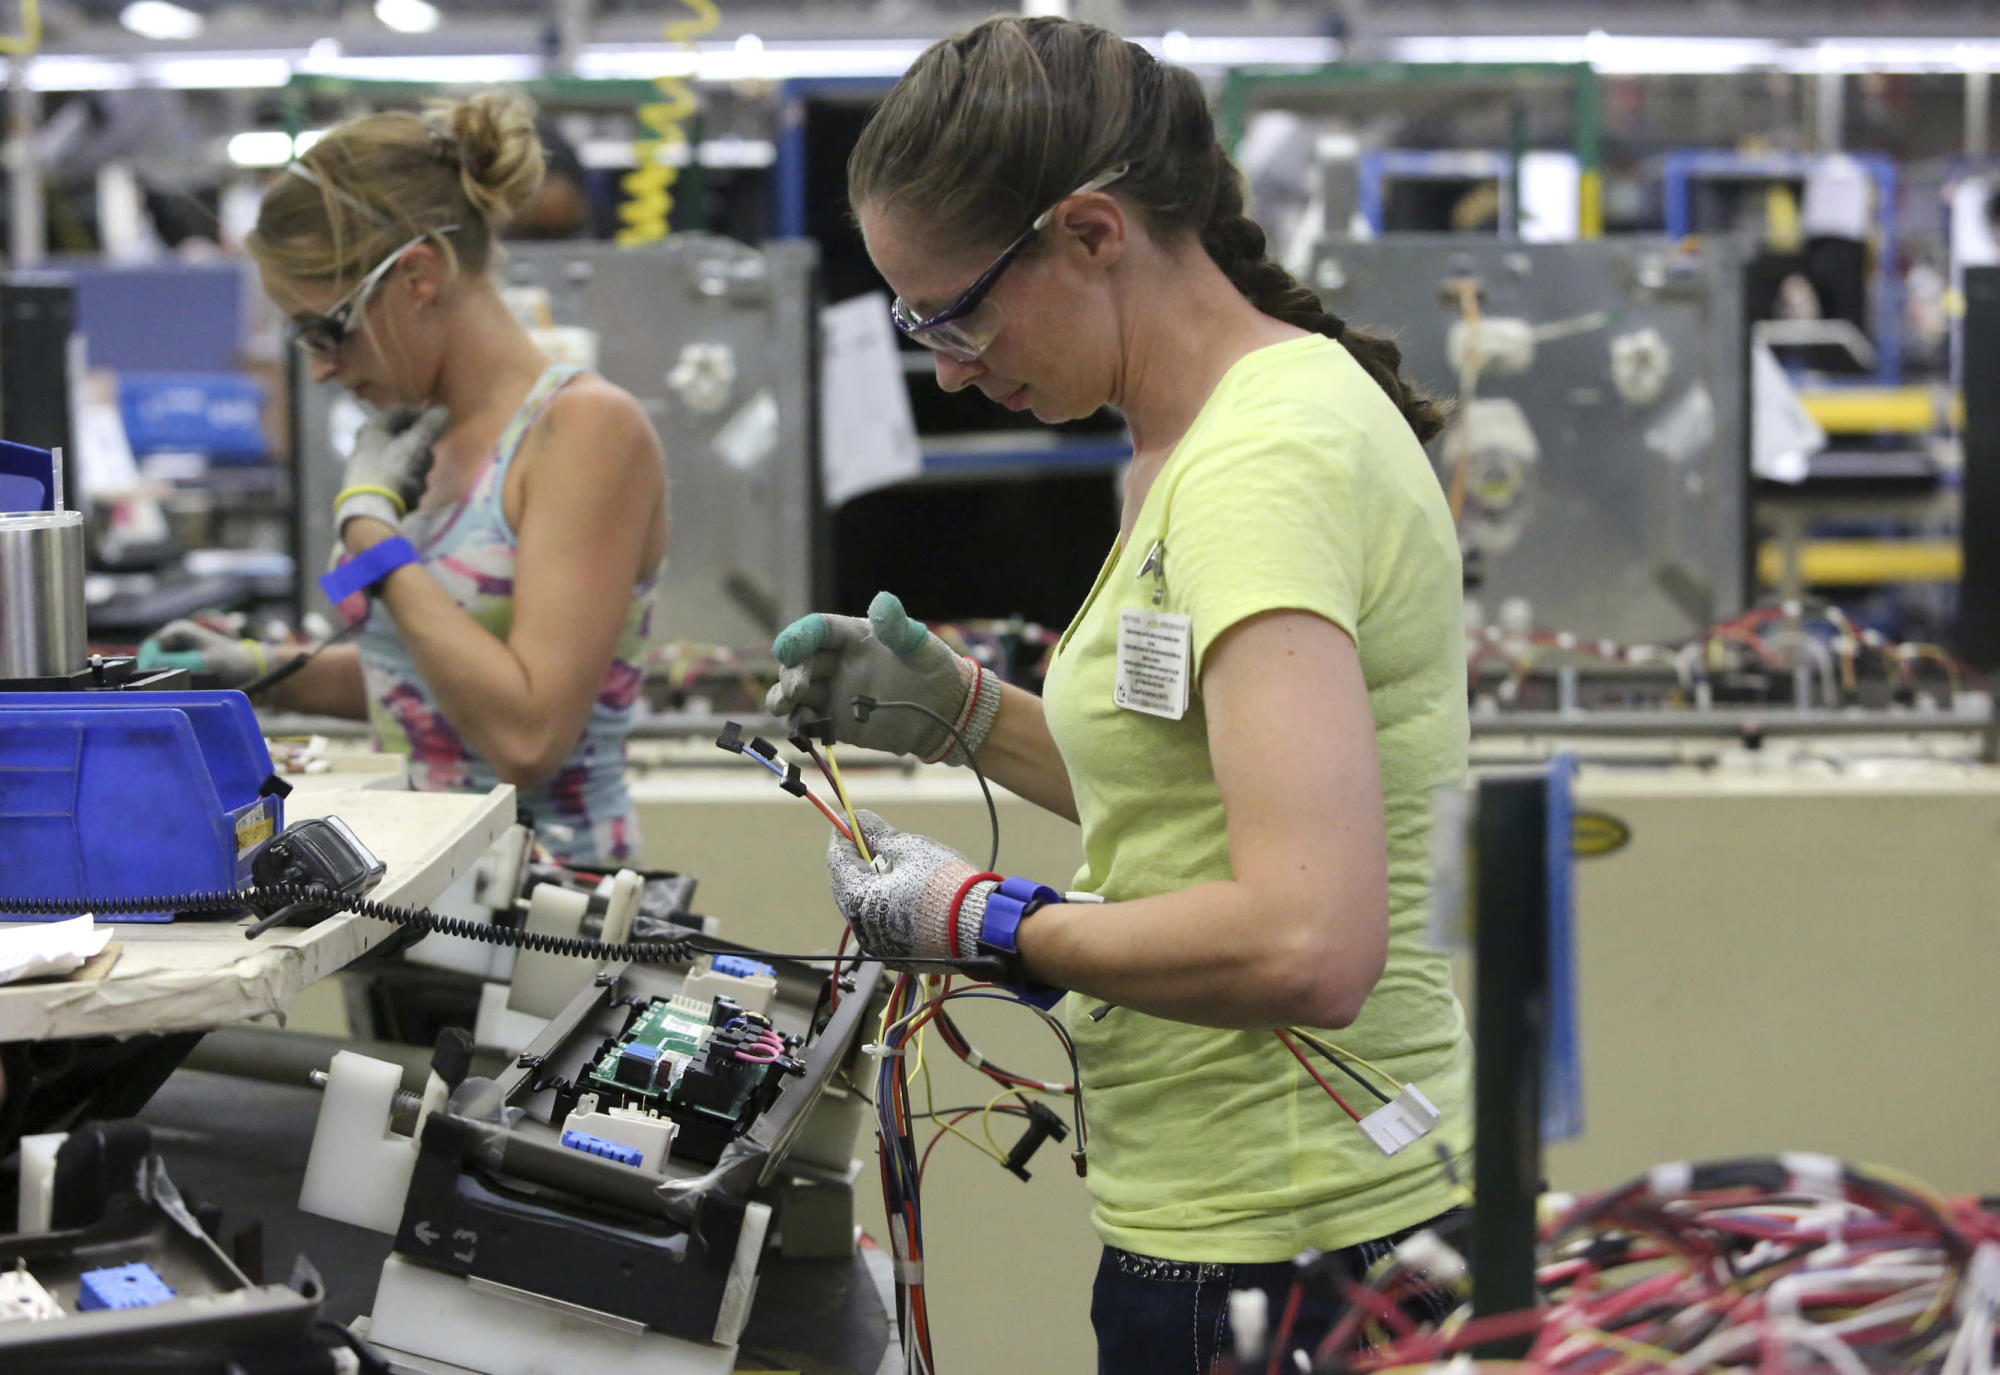 September factory orders up 1.9%, economists see risks ahead